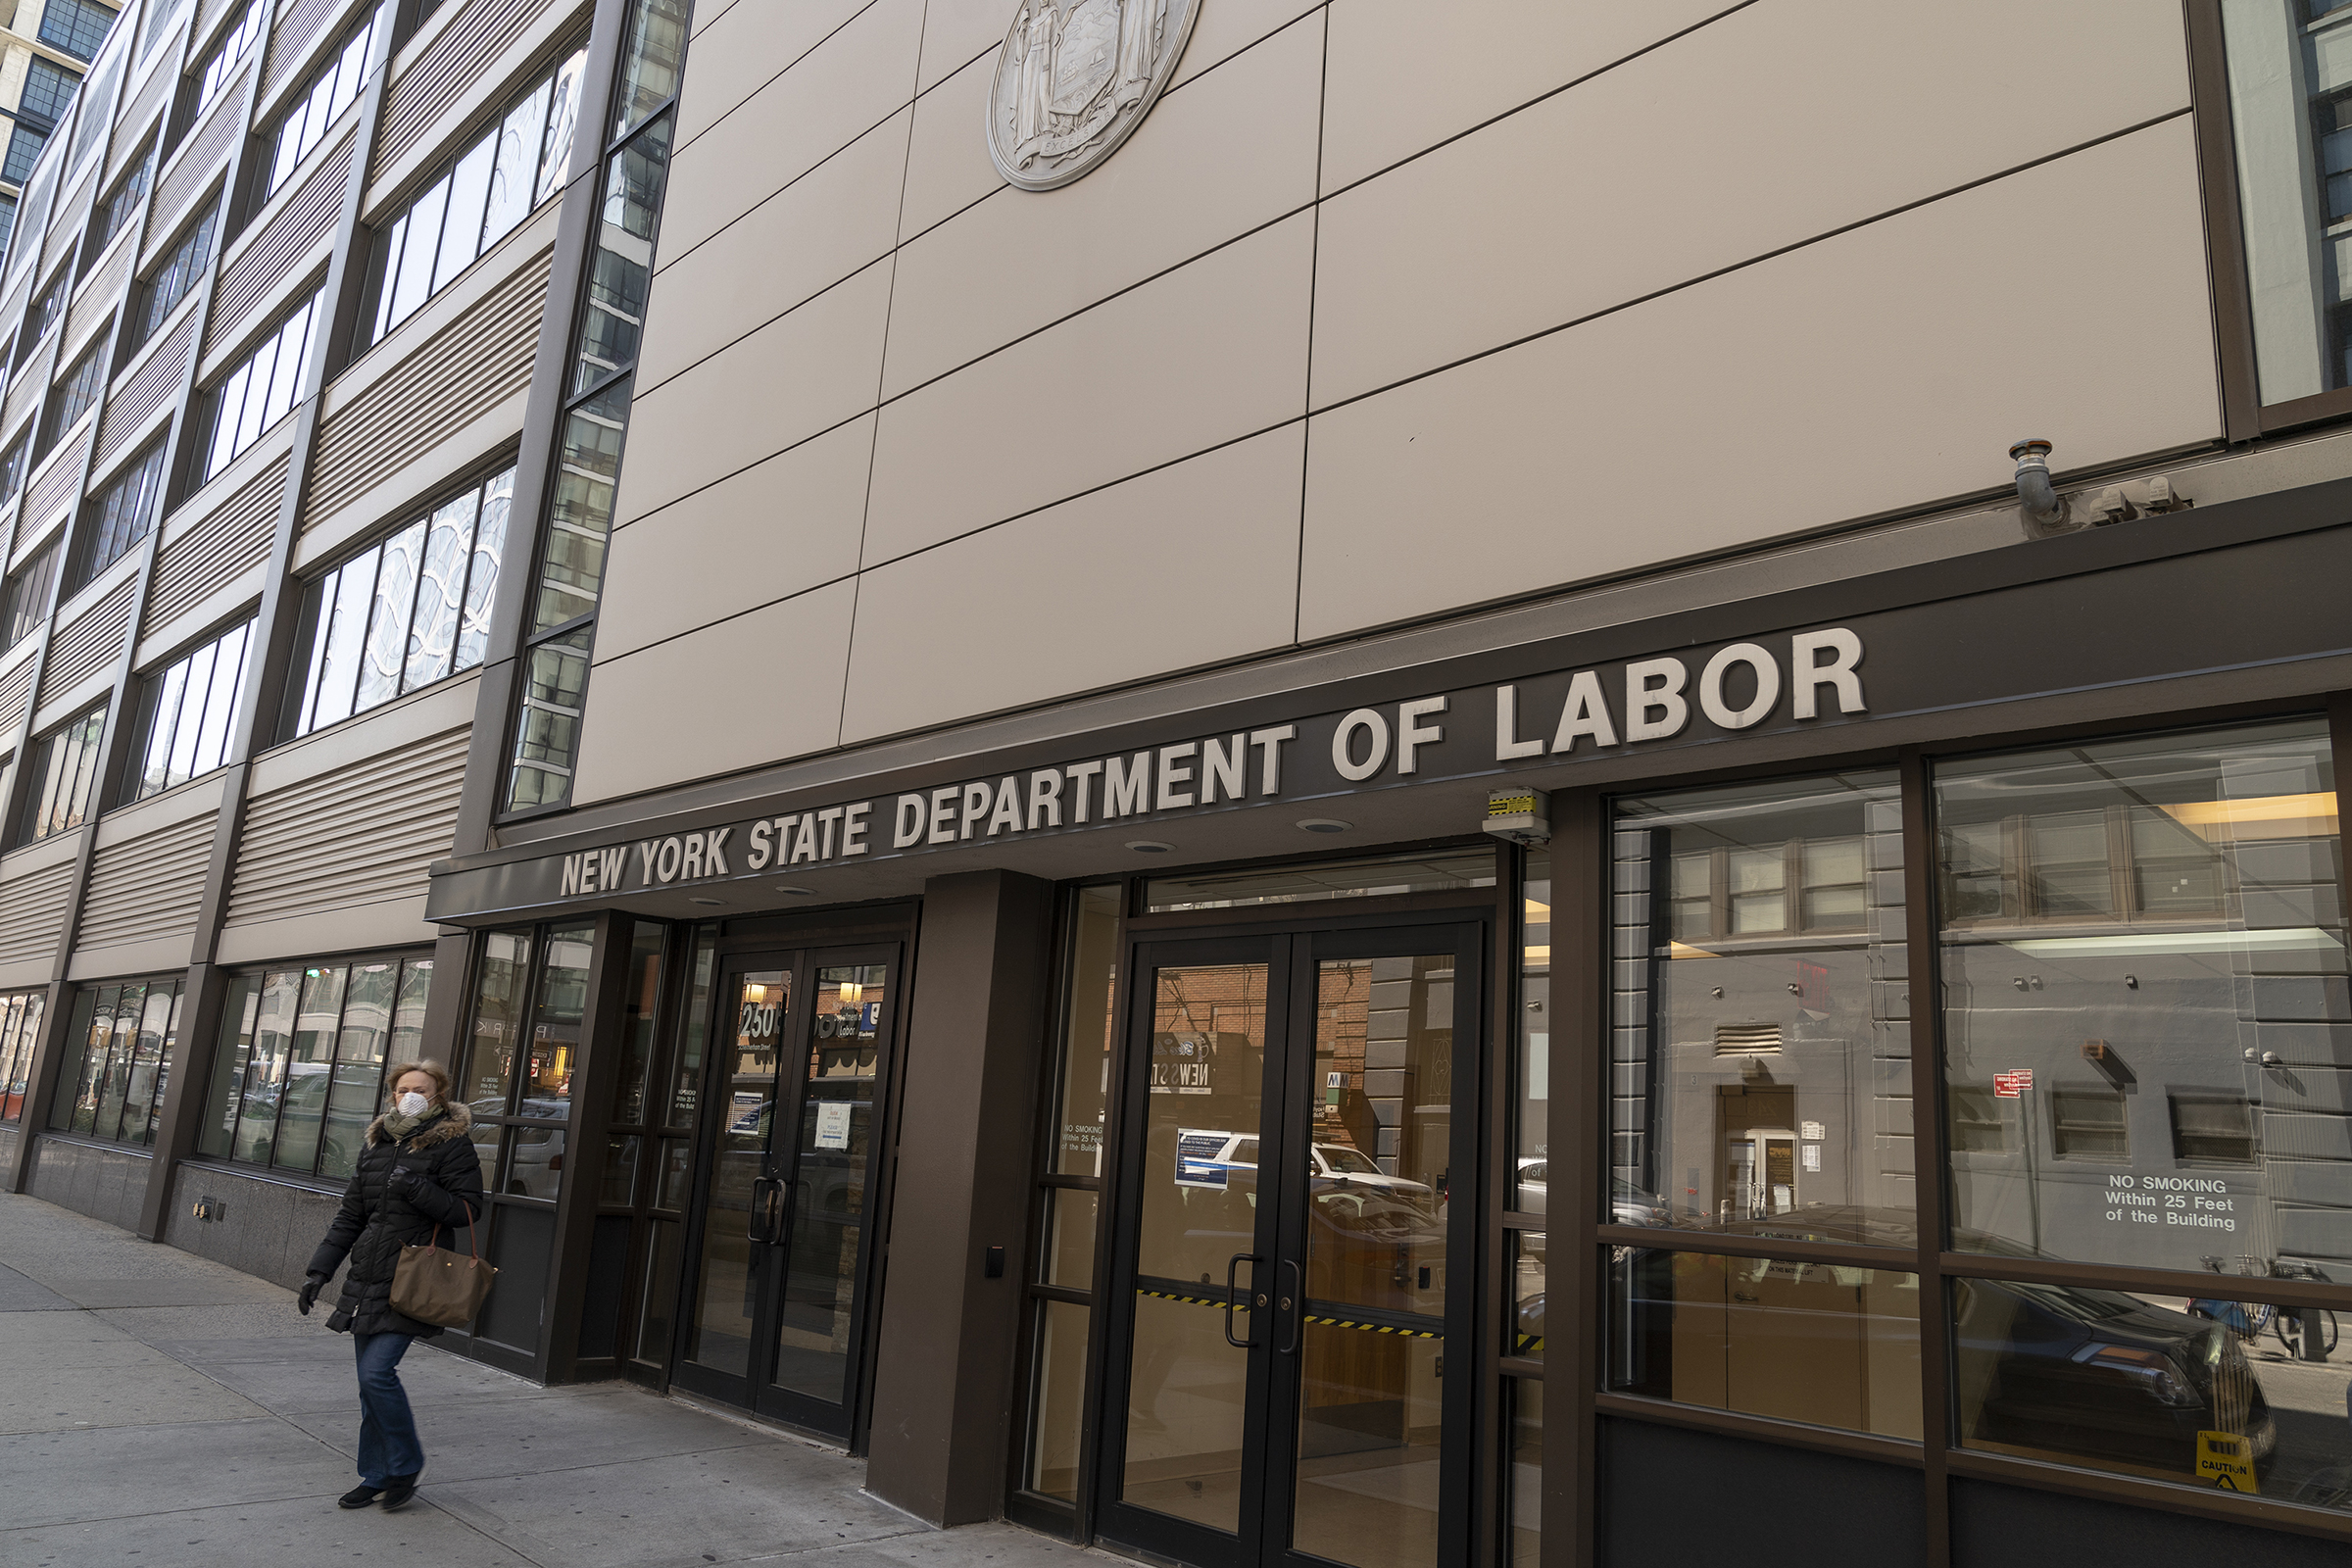 Brooklyn office of the NYS Department of Labor, seen on March 26, 2020.